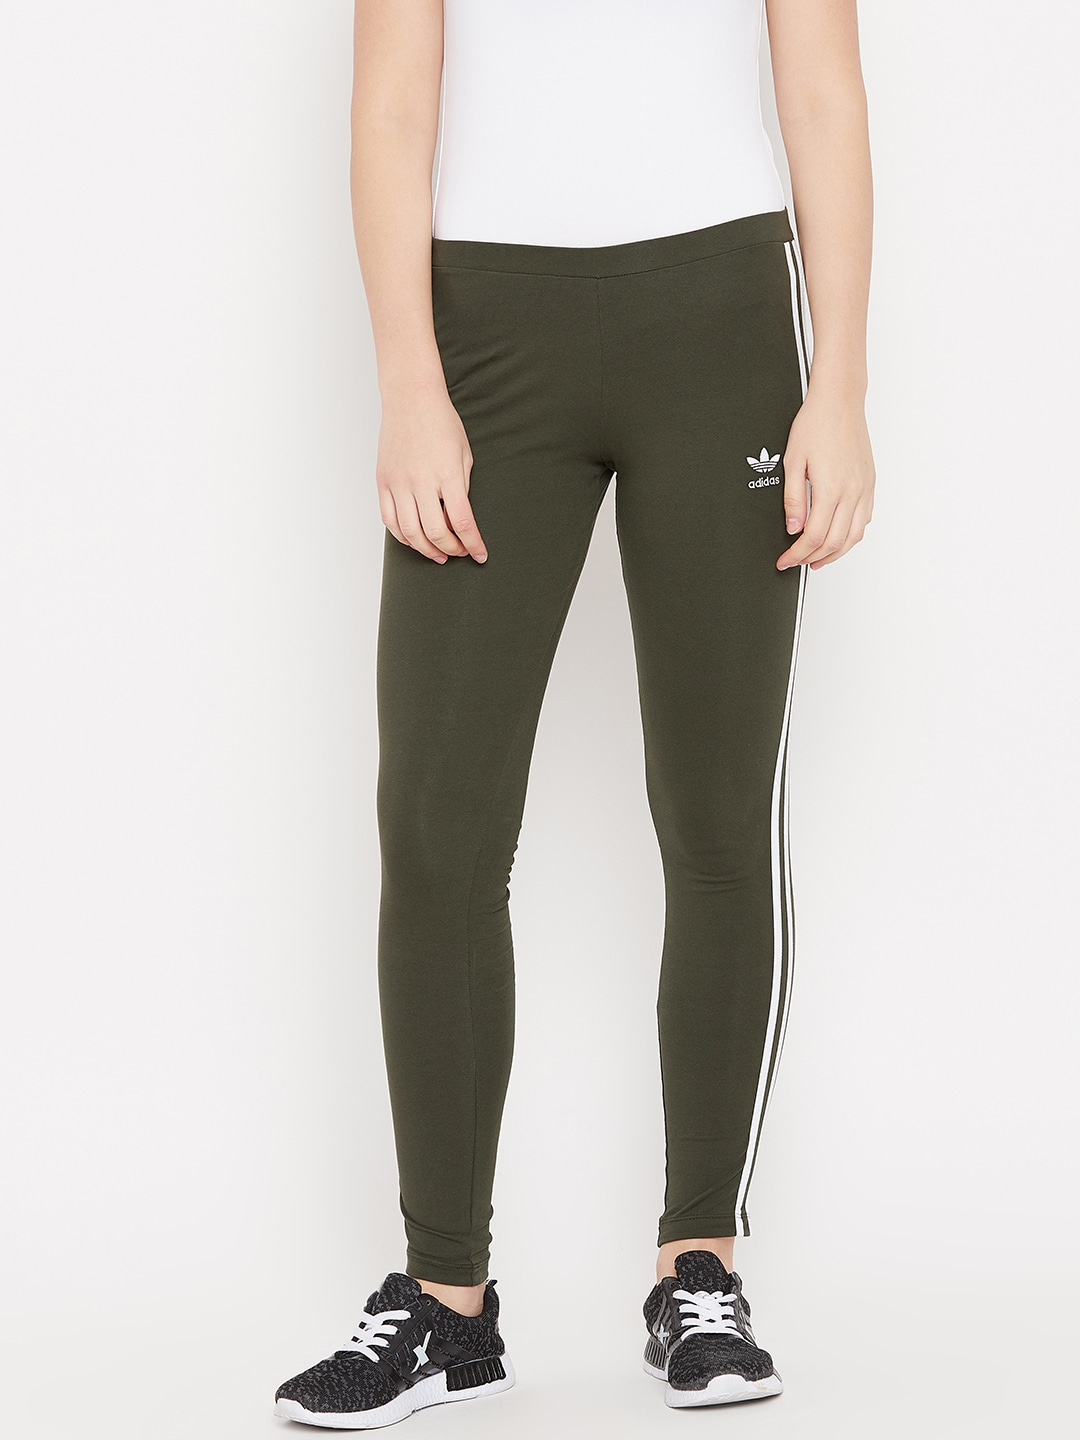 6be273edeac Adidas David Beckham Tights Casual Shoes - Buy Adidas David Beckham Tights  Casual Shoes online in India